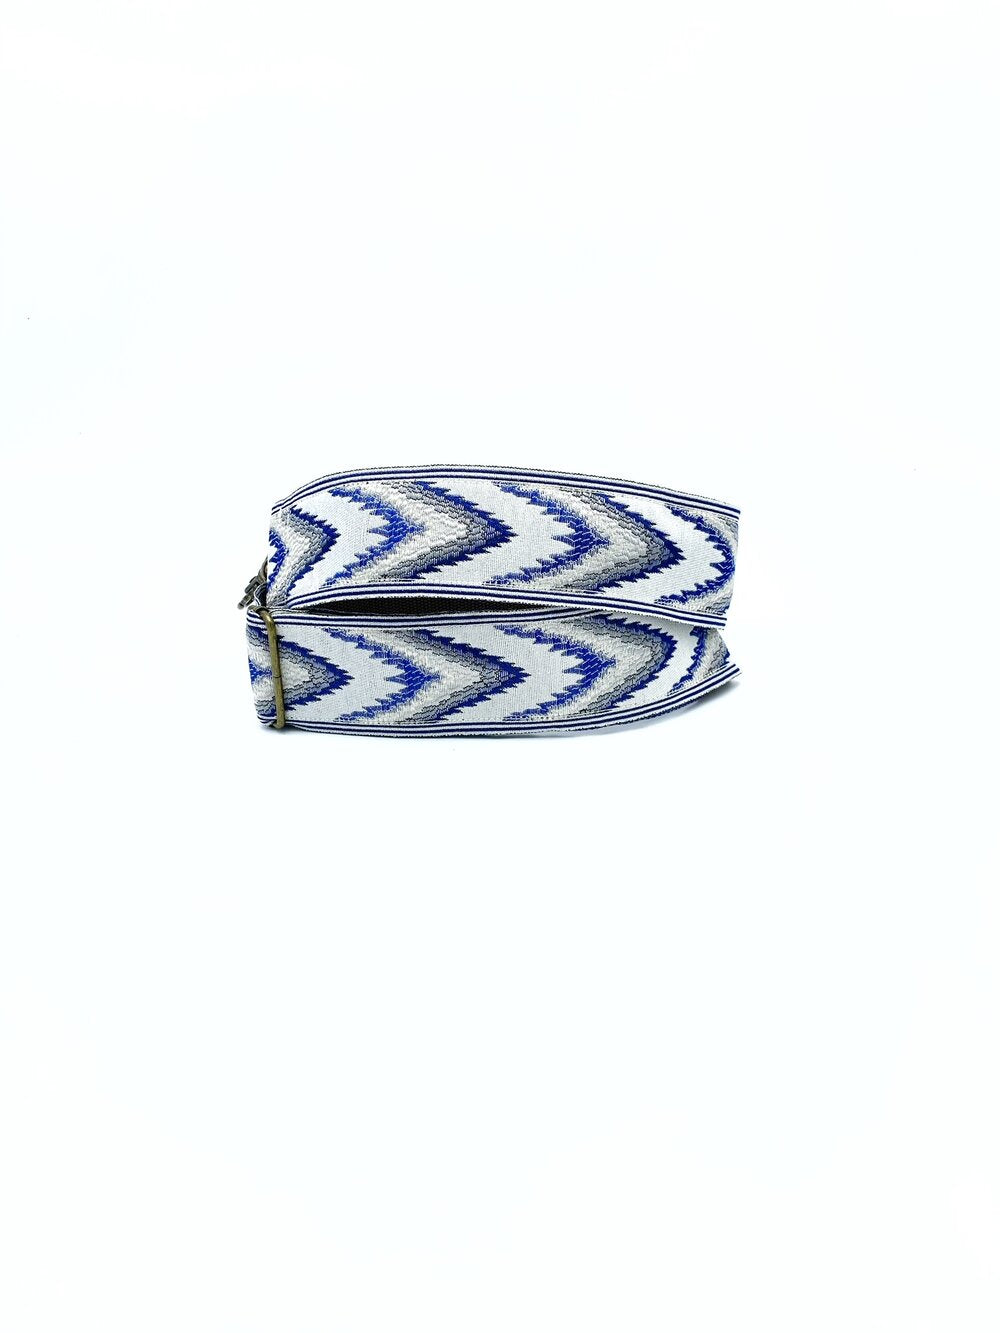 Vintage Trim Strap - Blue Chevron